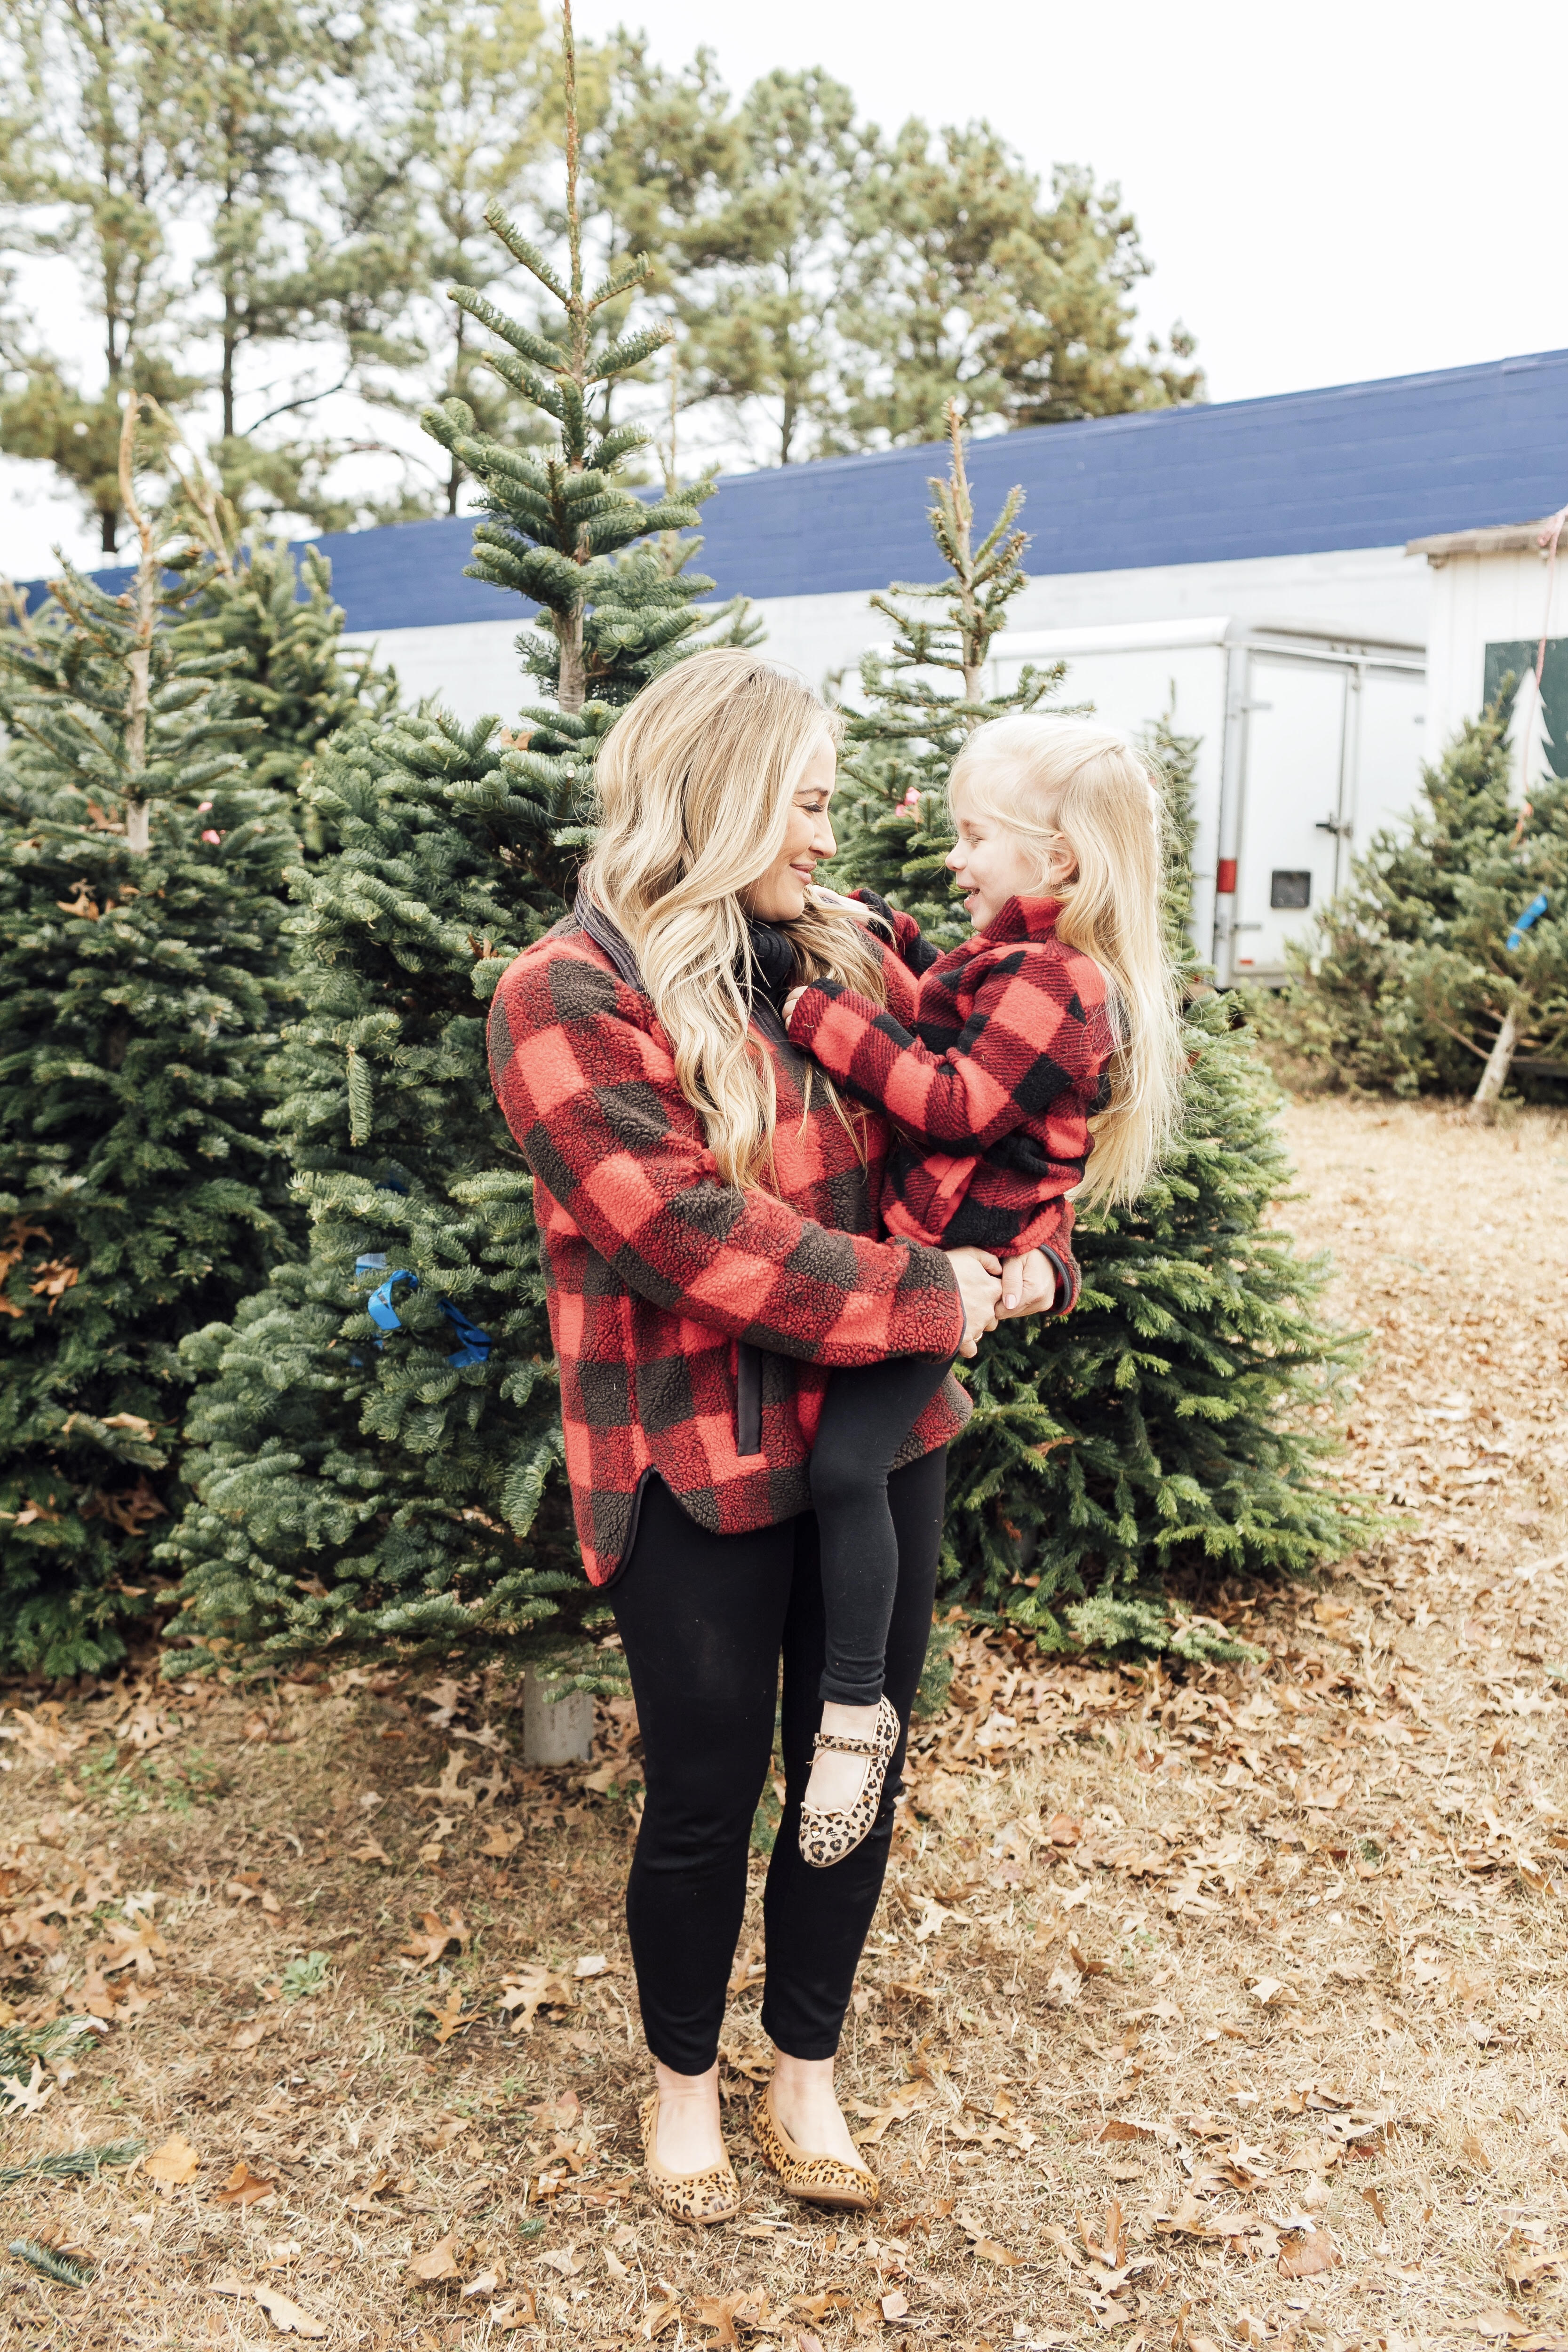 Merry Christmas Wishes featured by top US lifestyle blog, Walking in Memphis in High Heels: image of a mom and daughter wearing red plaid jackets, black jeans and gold shoes